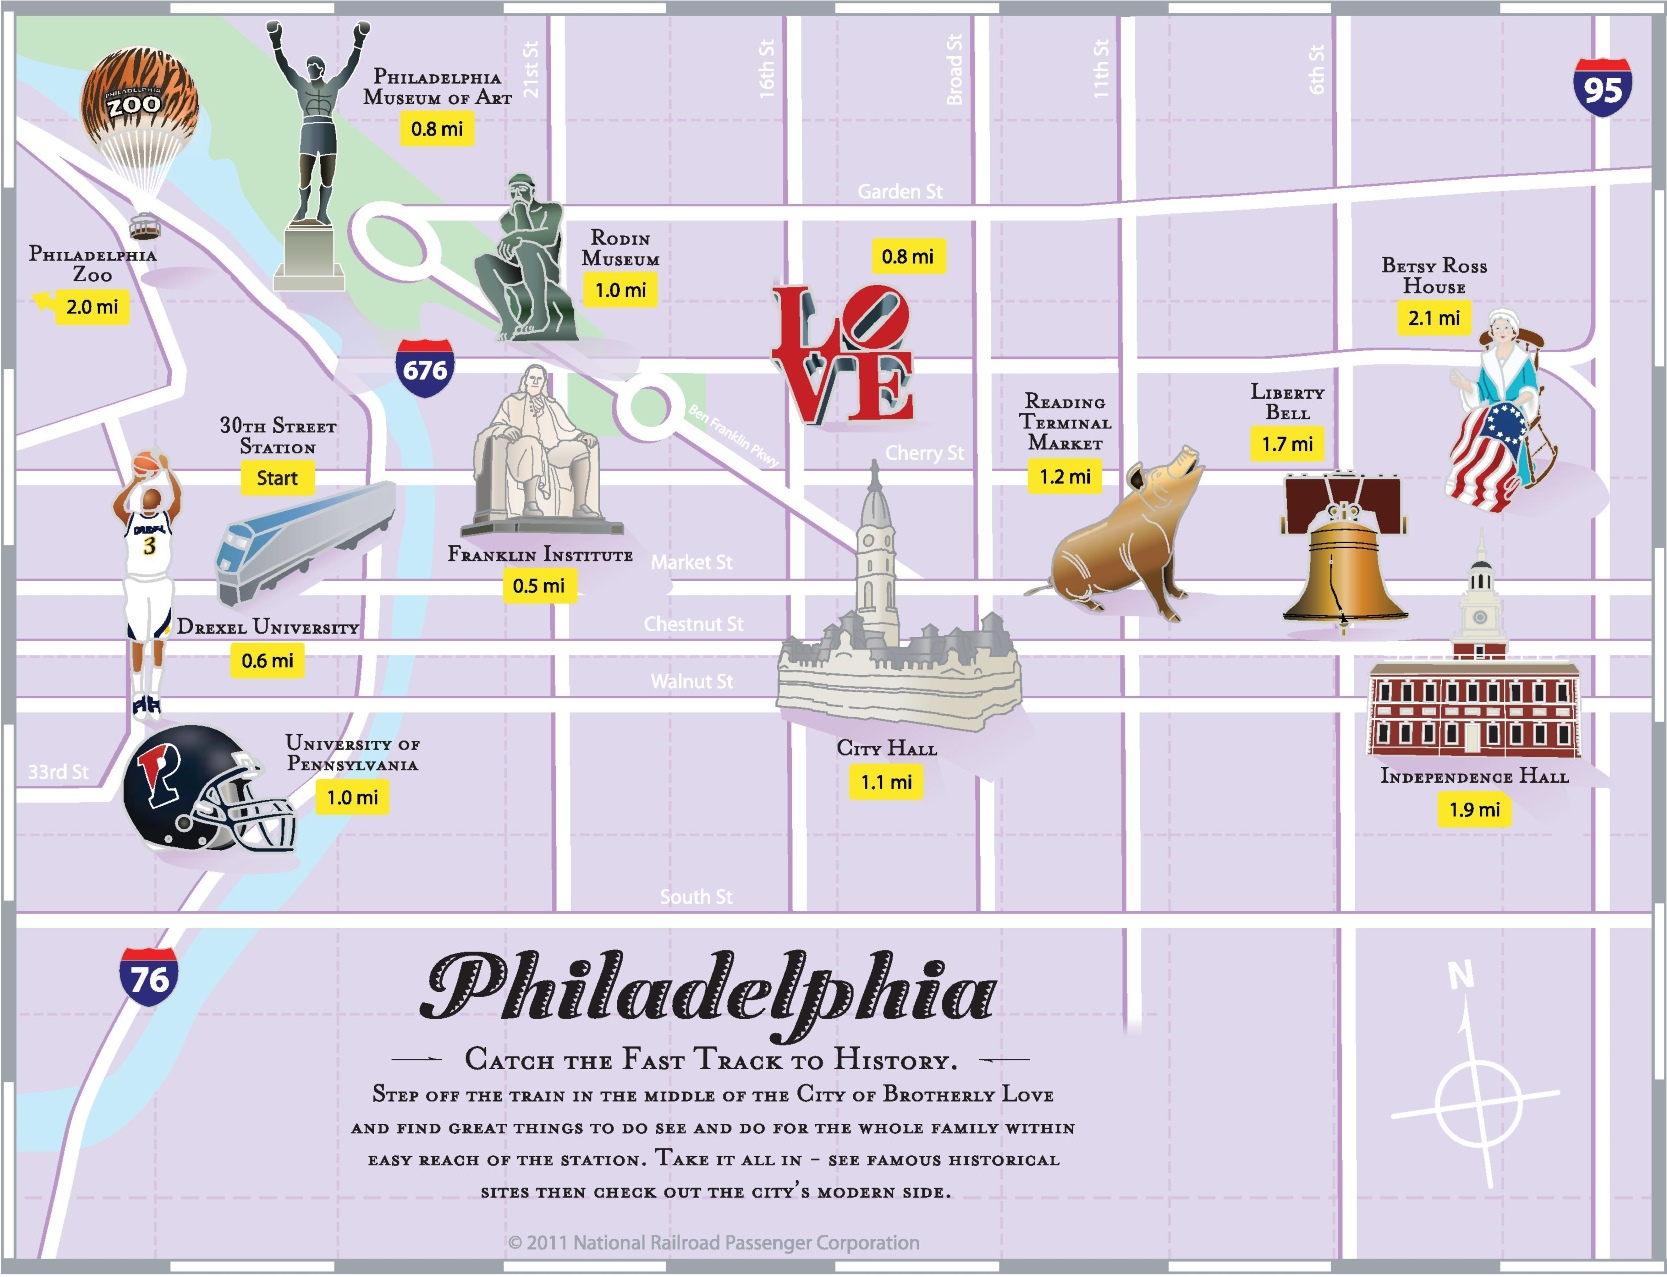 Philadelphia tourist attractions map – Alabama Tourist Attractions Map